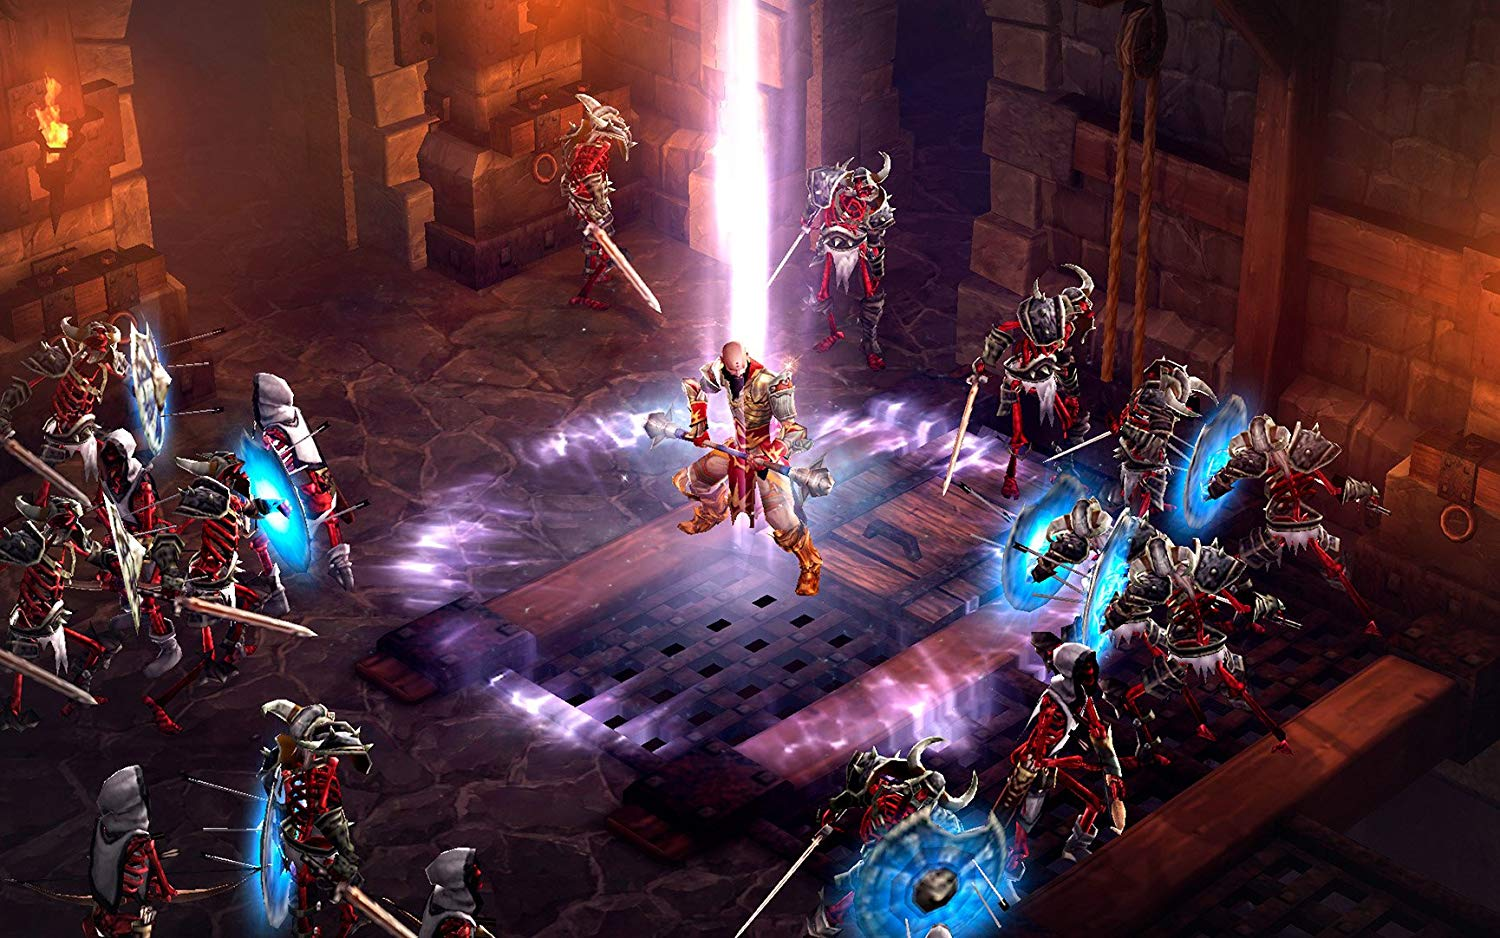 <em>Diablo III</em> has lots of loot for you to plunder.